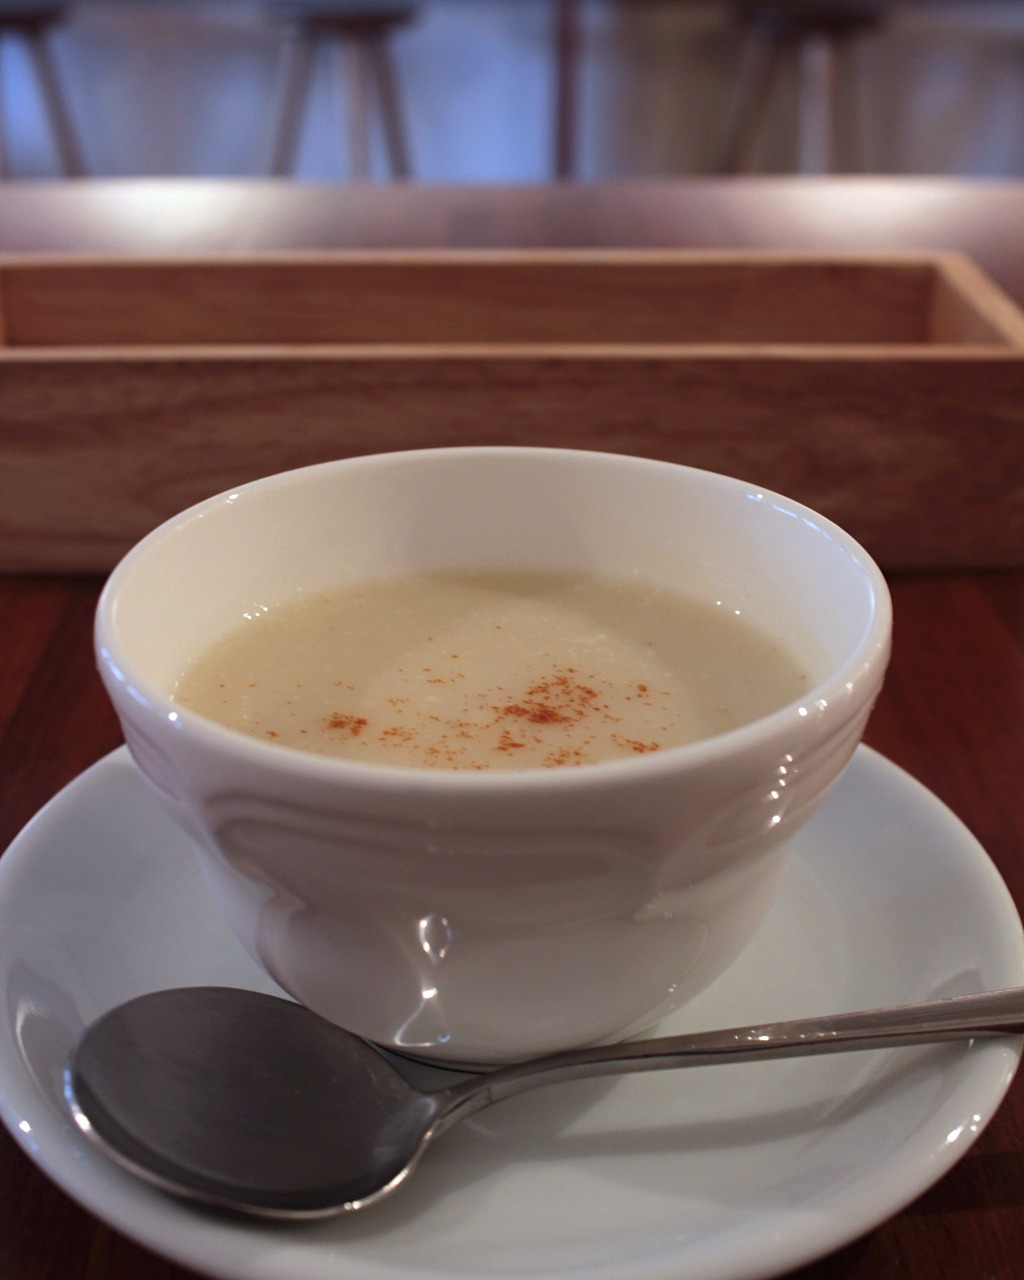 Vegan Potato Soup at Taste & Scent in Kanazawa, Japan